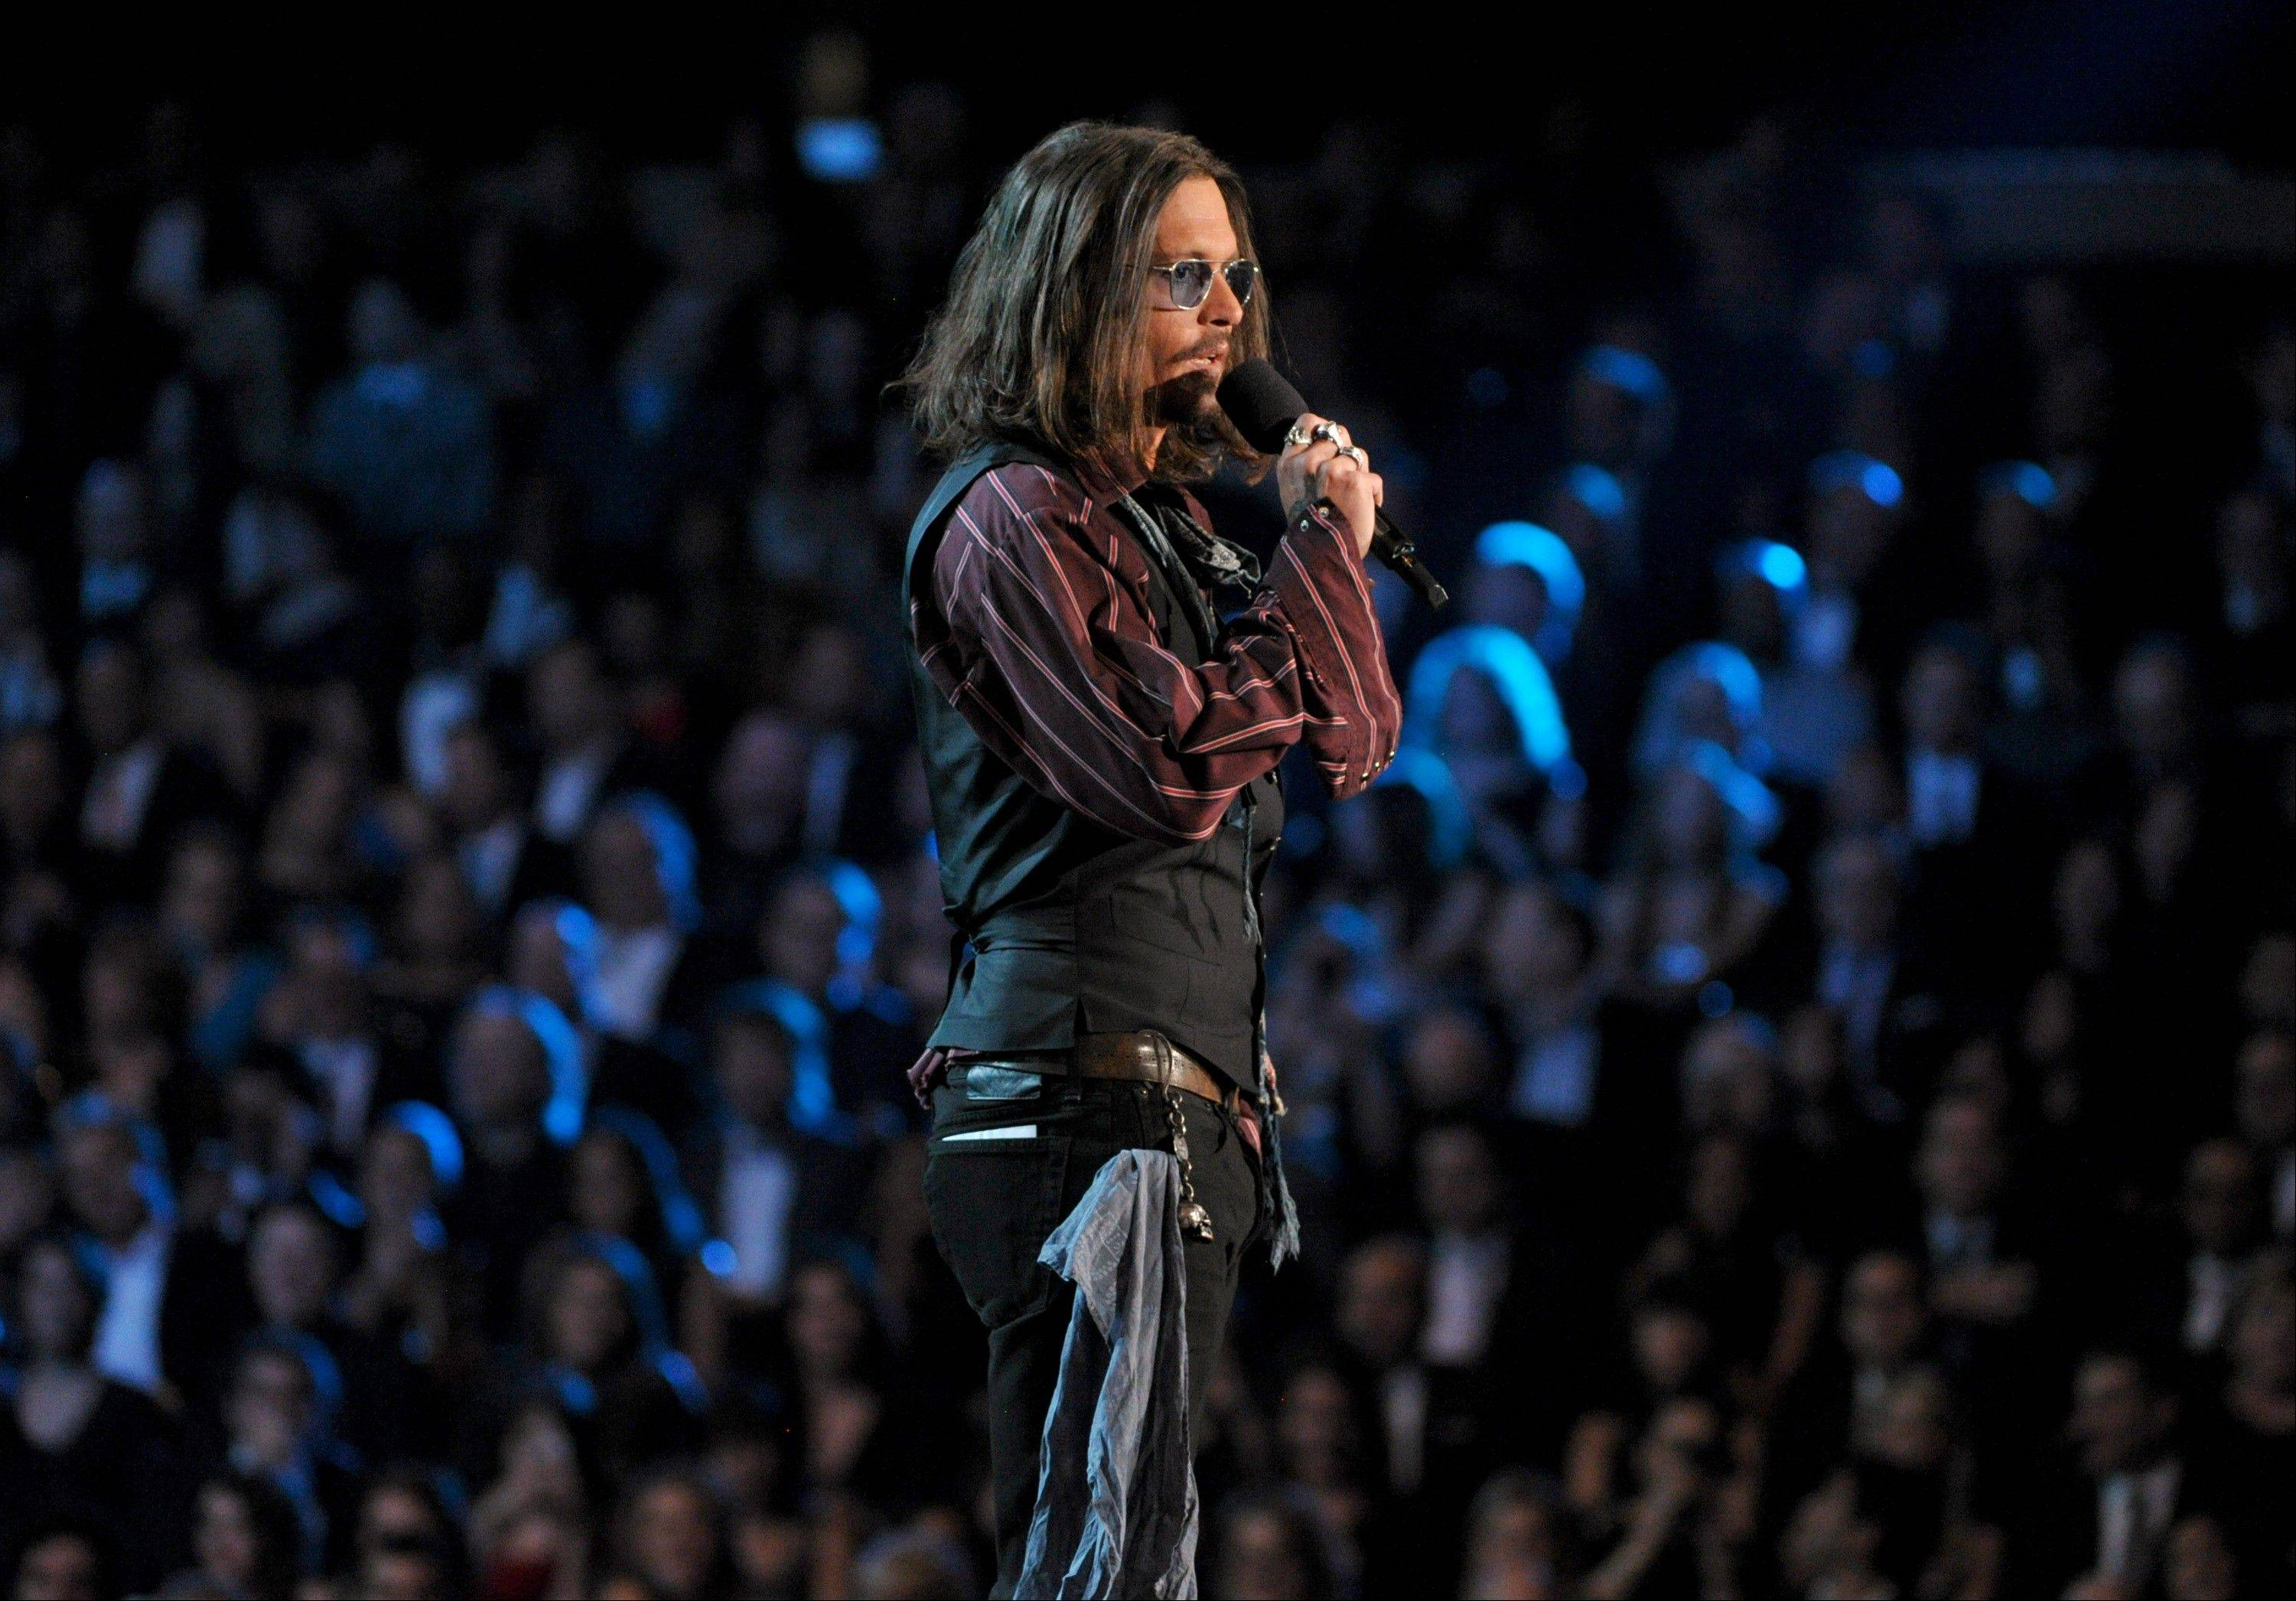 Actor Johnny Depp speaks on stage at the 55th annual Grammy Awards on Sunday, Feb. 10, 2013, in Los Angeles.